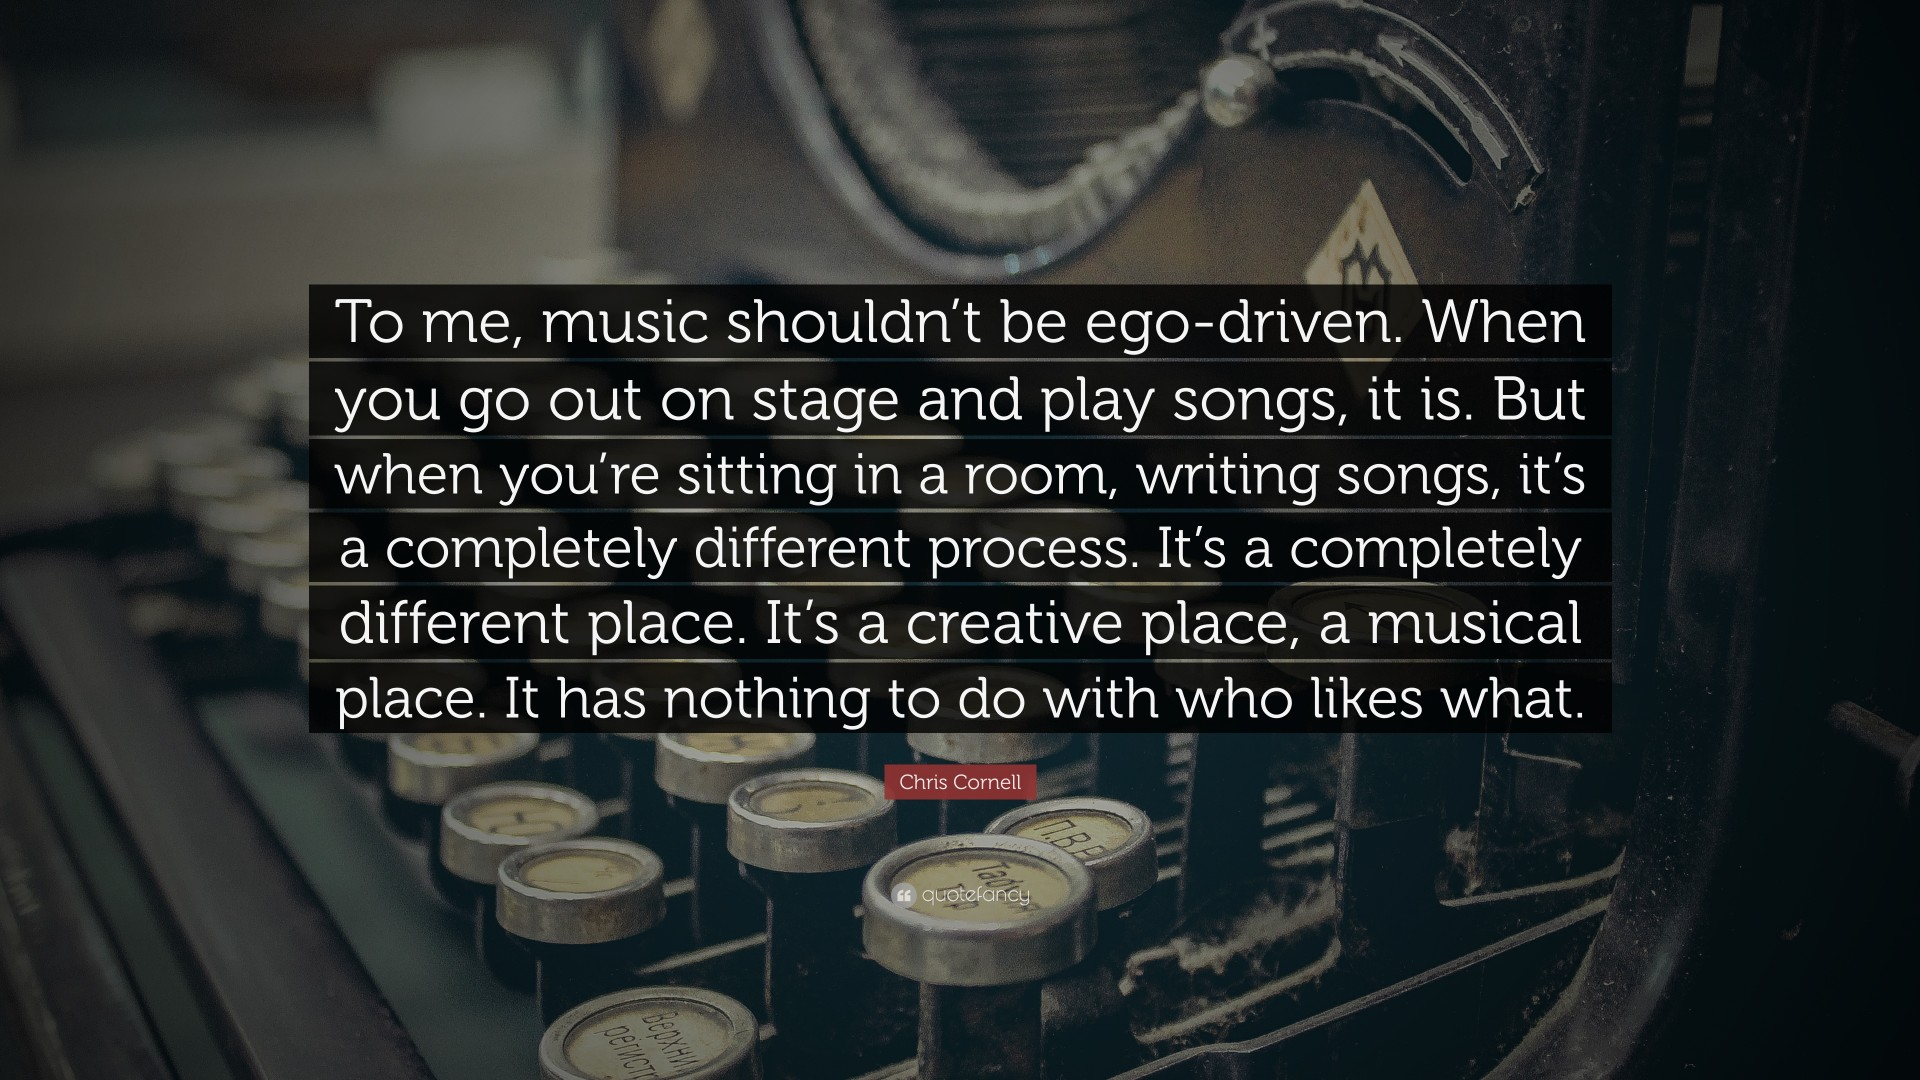 021 Cornell Essay Example Chris Quote To Me Music Shouldn T Ego Driven When Stupendous Mba Examples Engineering Essays That Worked 1920